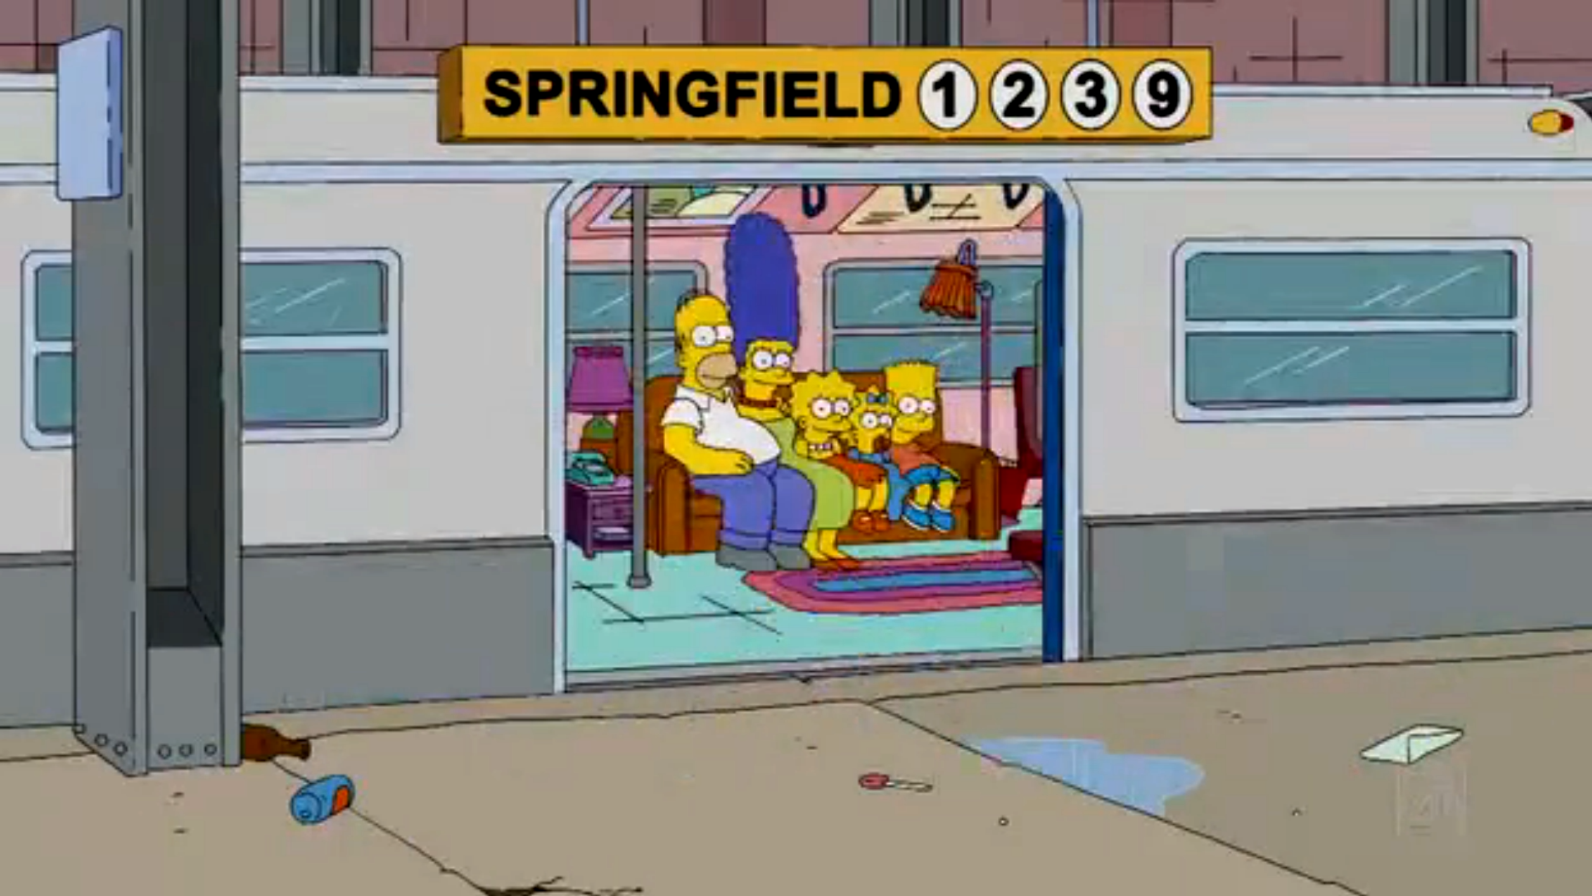 Springfield Subway Station couch gag